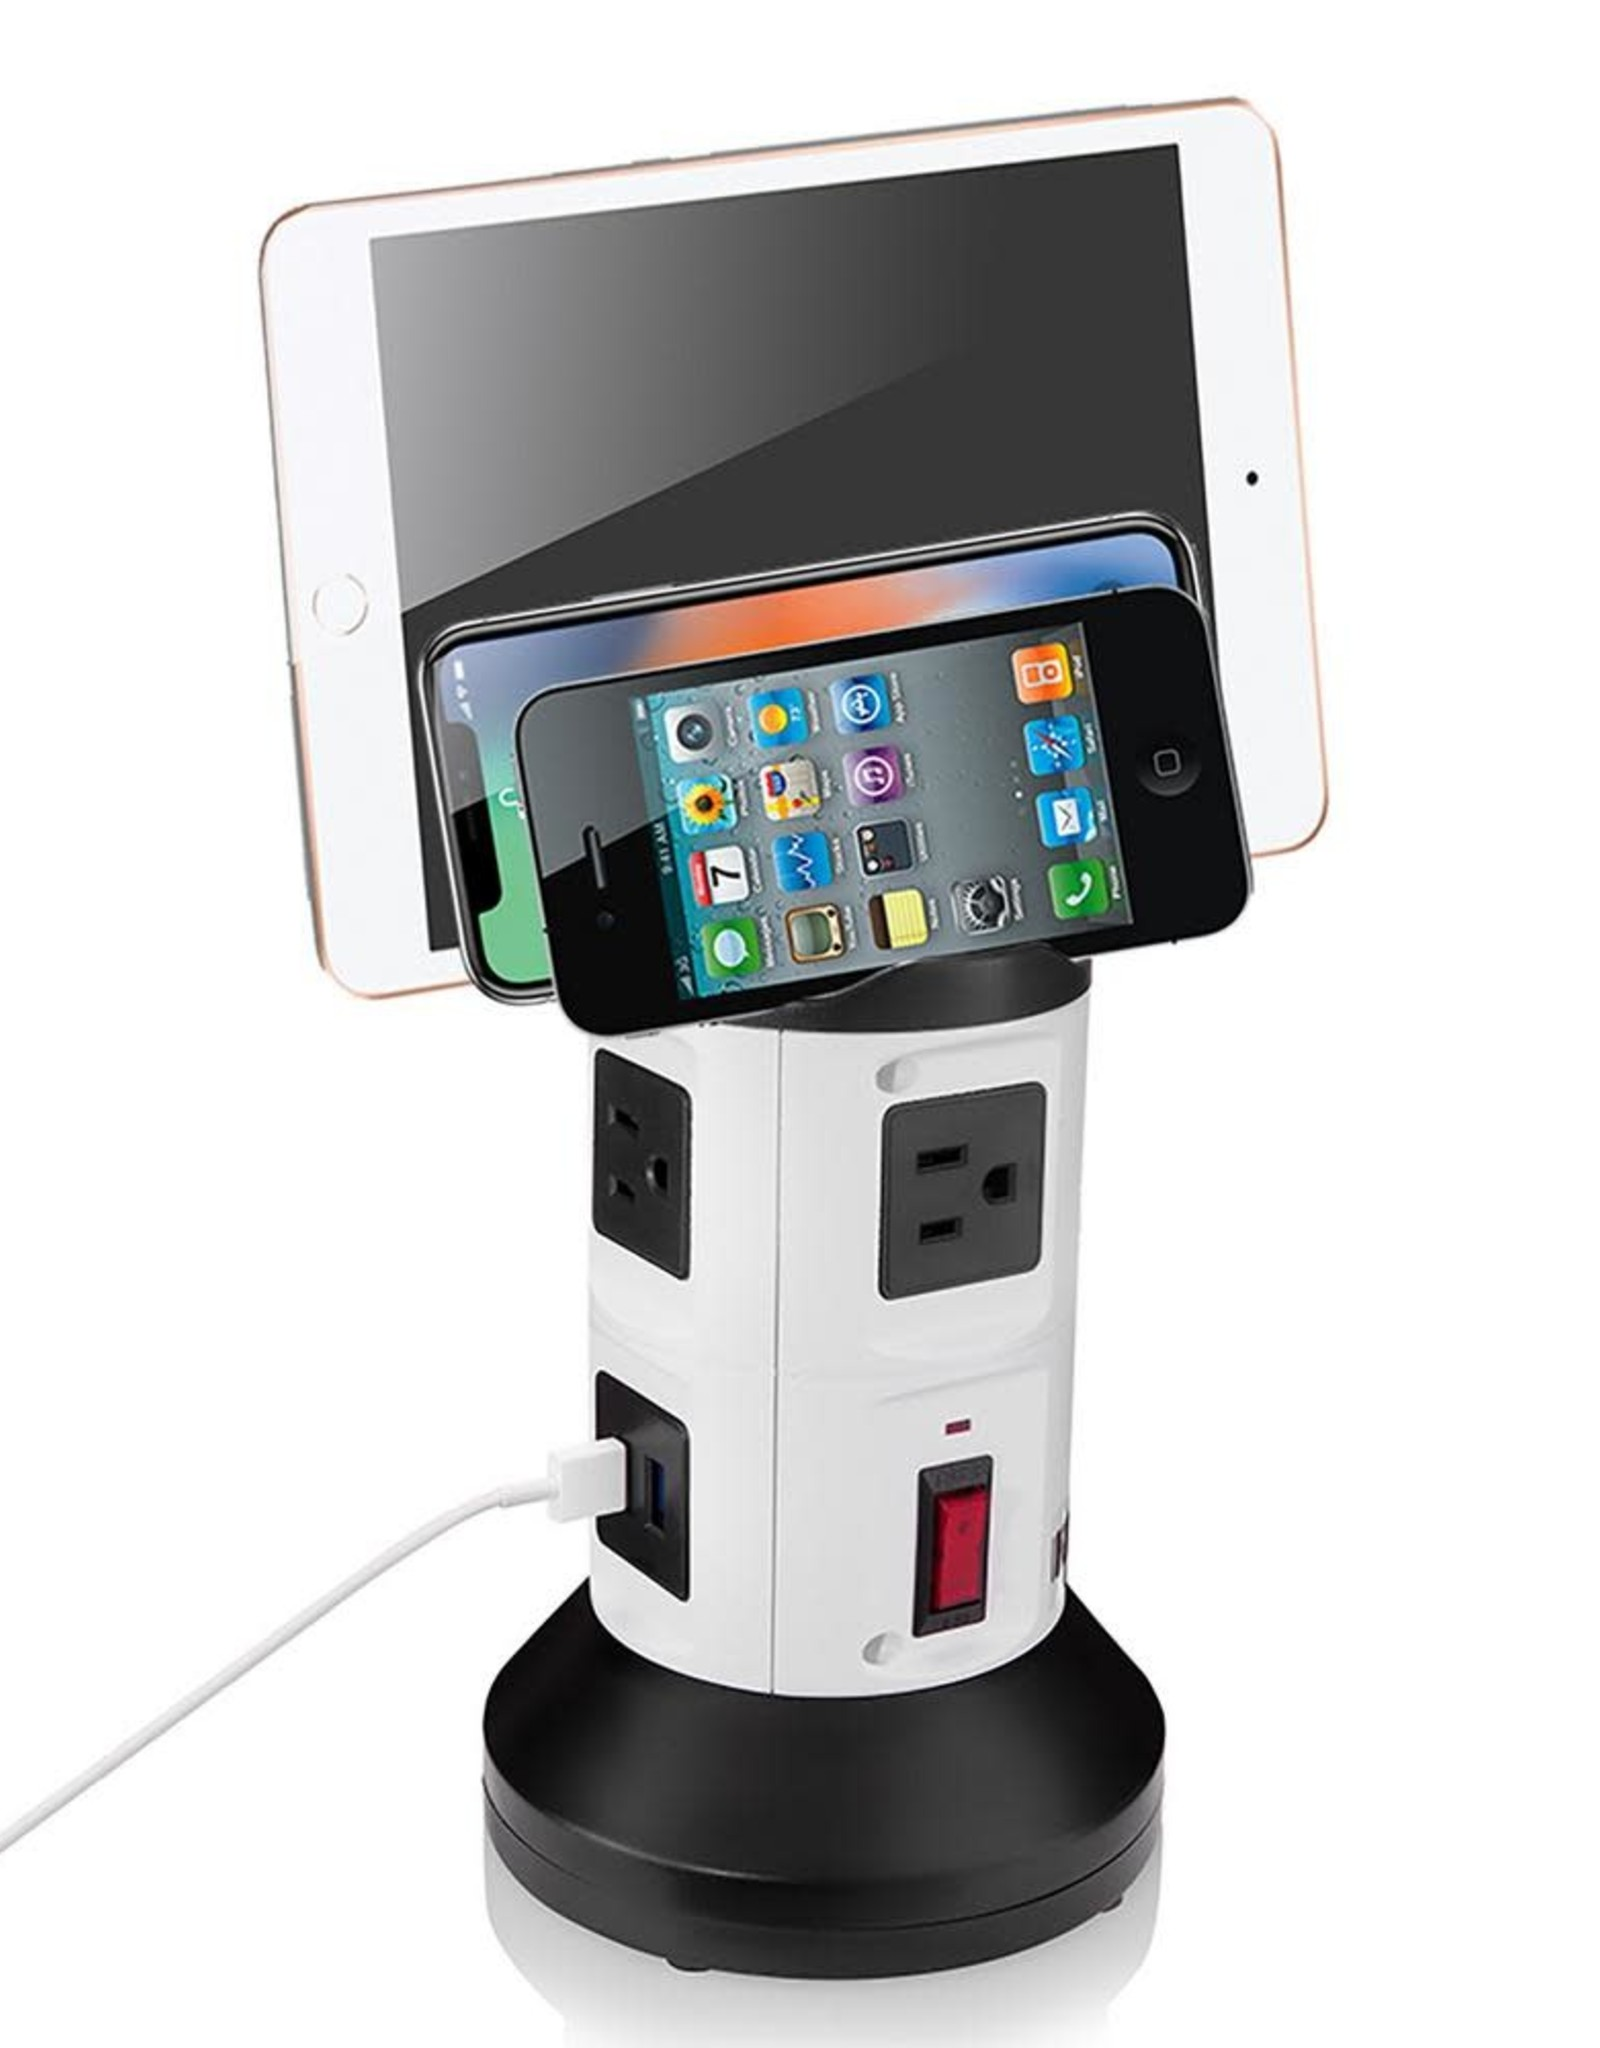 Bell + Howell 4-Outlets / 6 USB Spin Power - The Ultimate Smart Charging Station